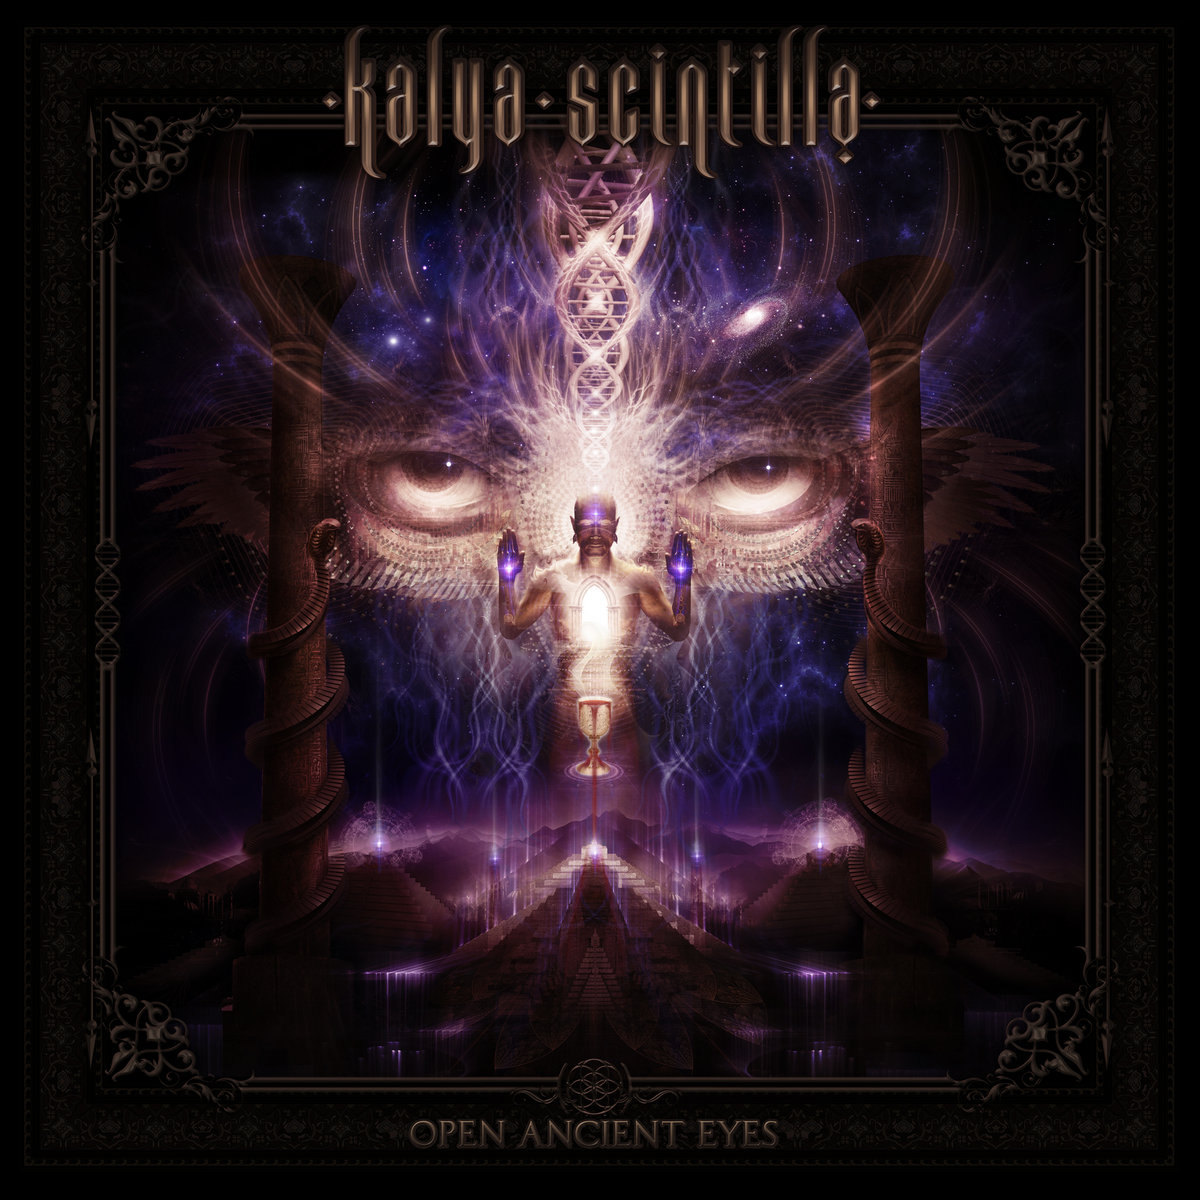 Kalya Scintilla feat. Deya Dova - TribeOriginal @ 'Open Ancient Eyes' album (432hz, electronic)